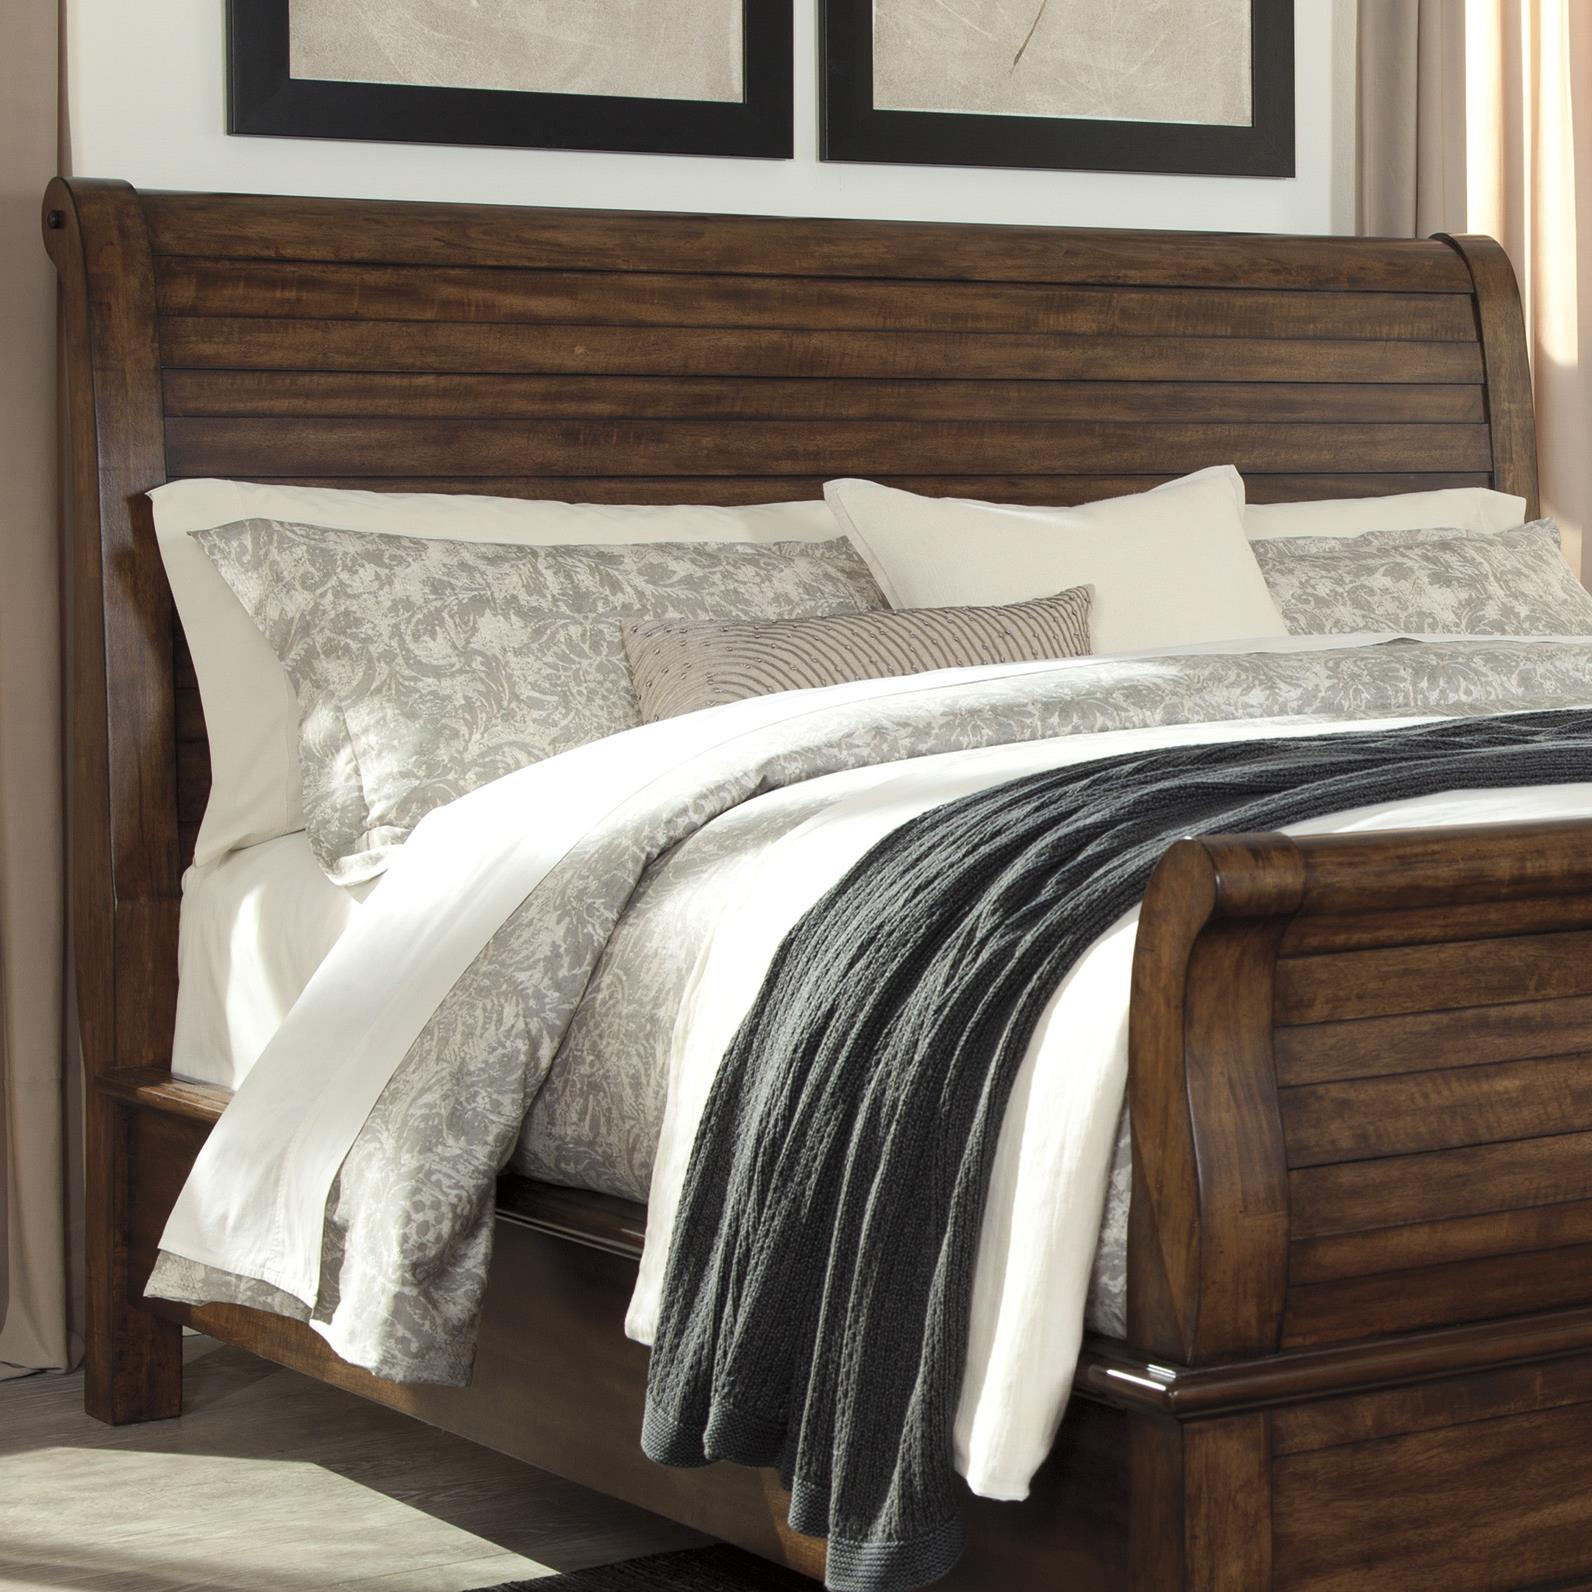 Signature Design by Ashley Chaddinfield Queen Sleigh Headboard - Item Number: B648-77